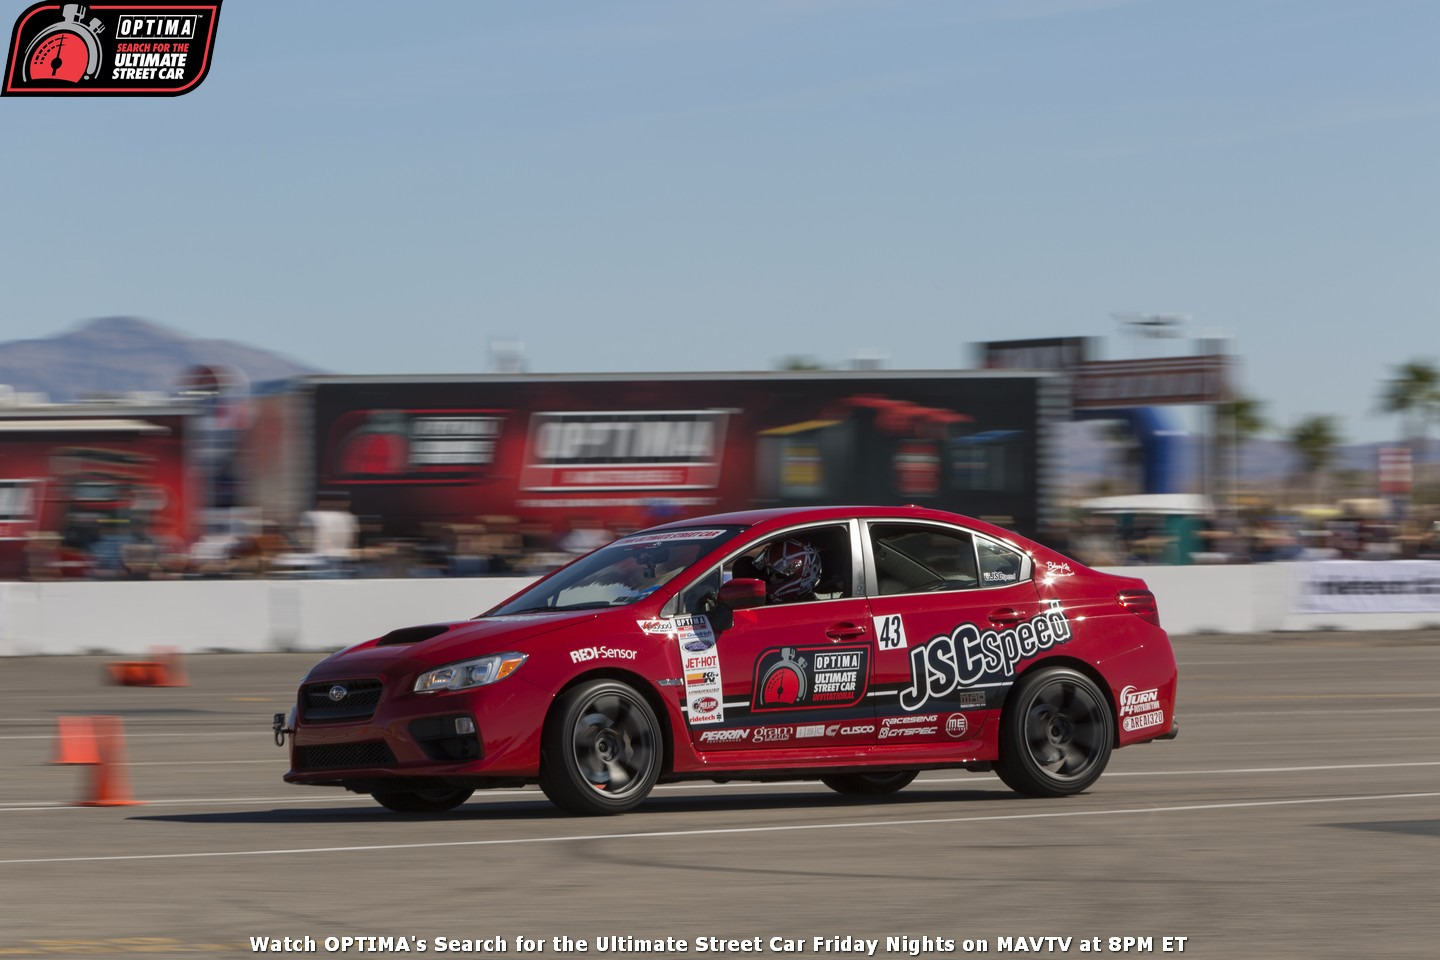 Justin-Stone-2015-Subaru-WRX-RideTech-Autocross-2014-OPTIMA-Ultimate-Street-Car-Invitational_40.jpg